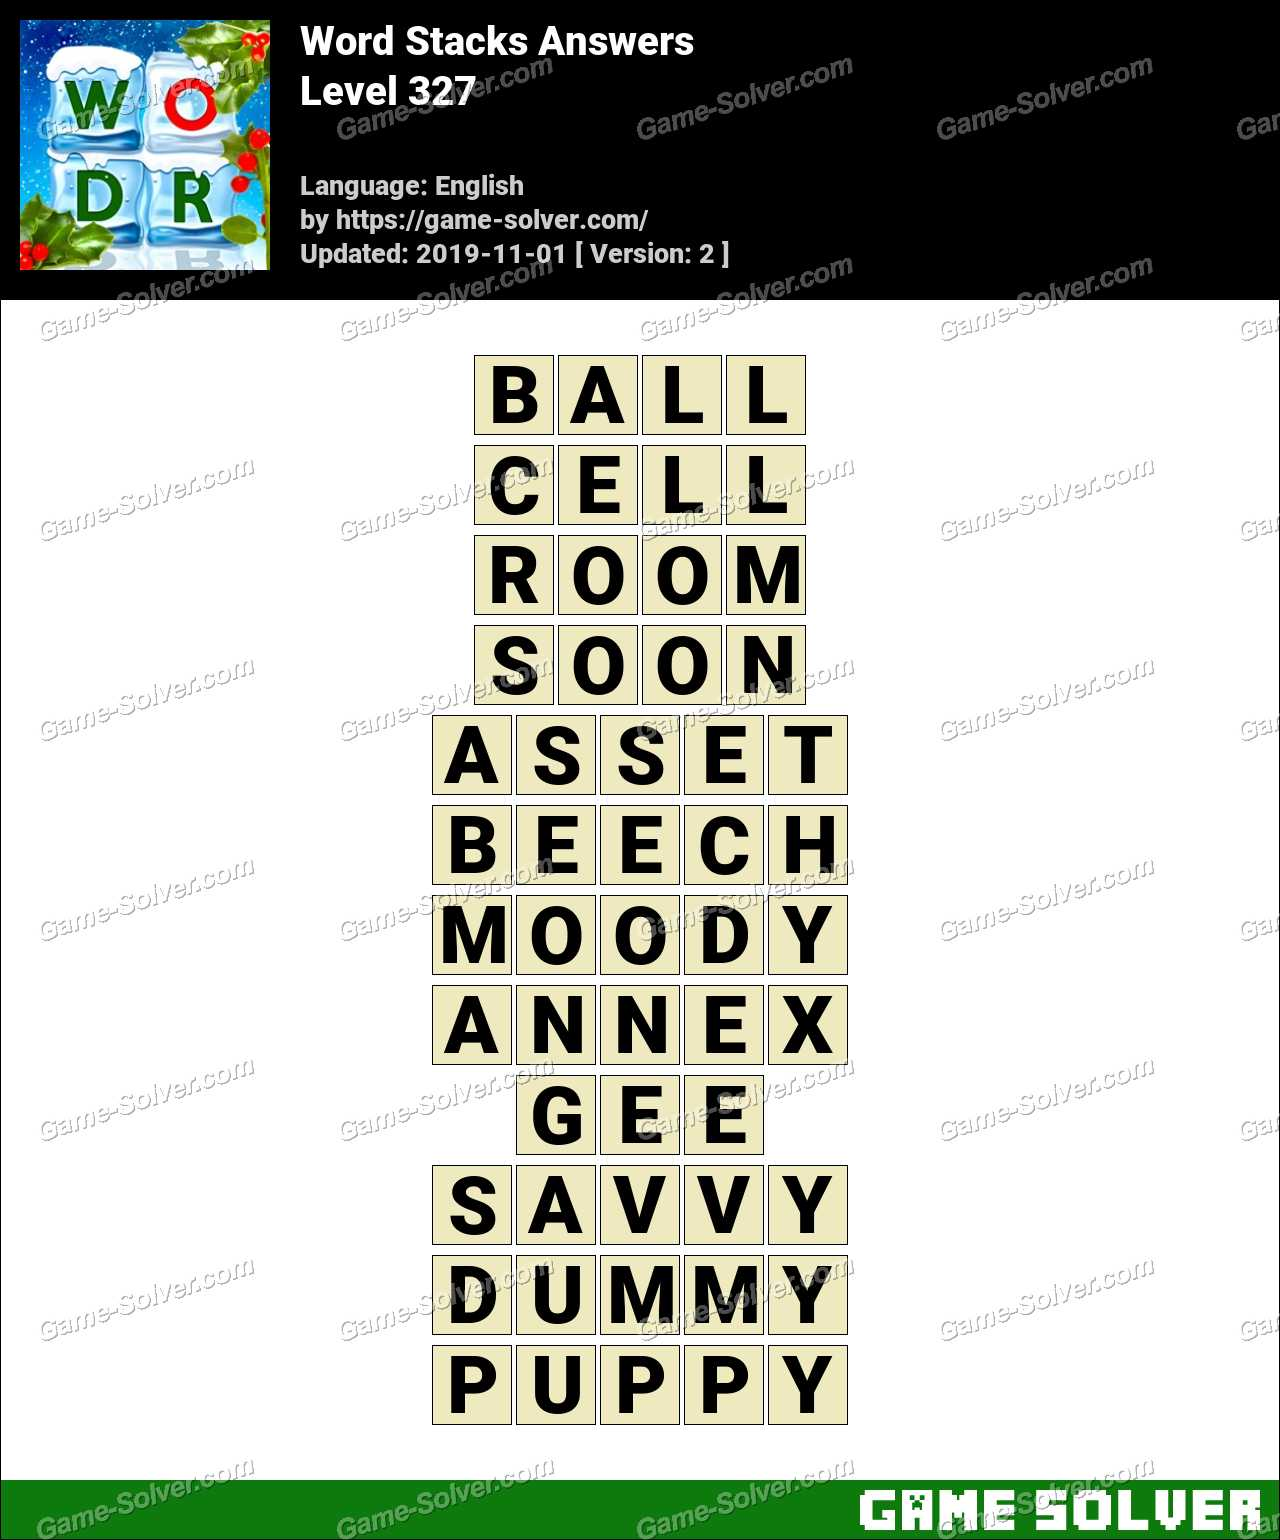 Word Stacks Level 327 Answers